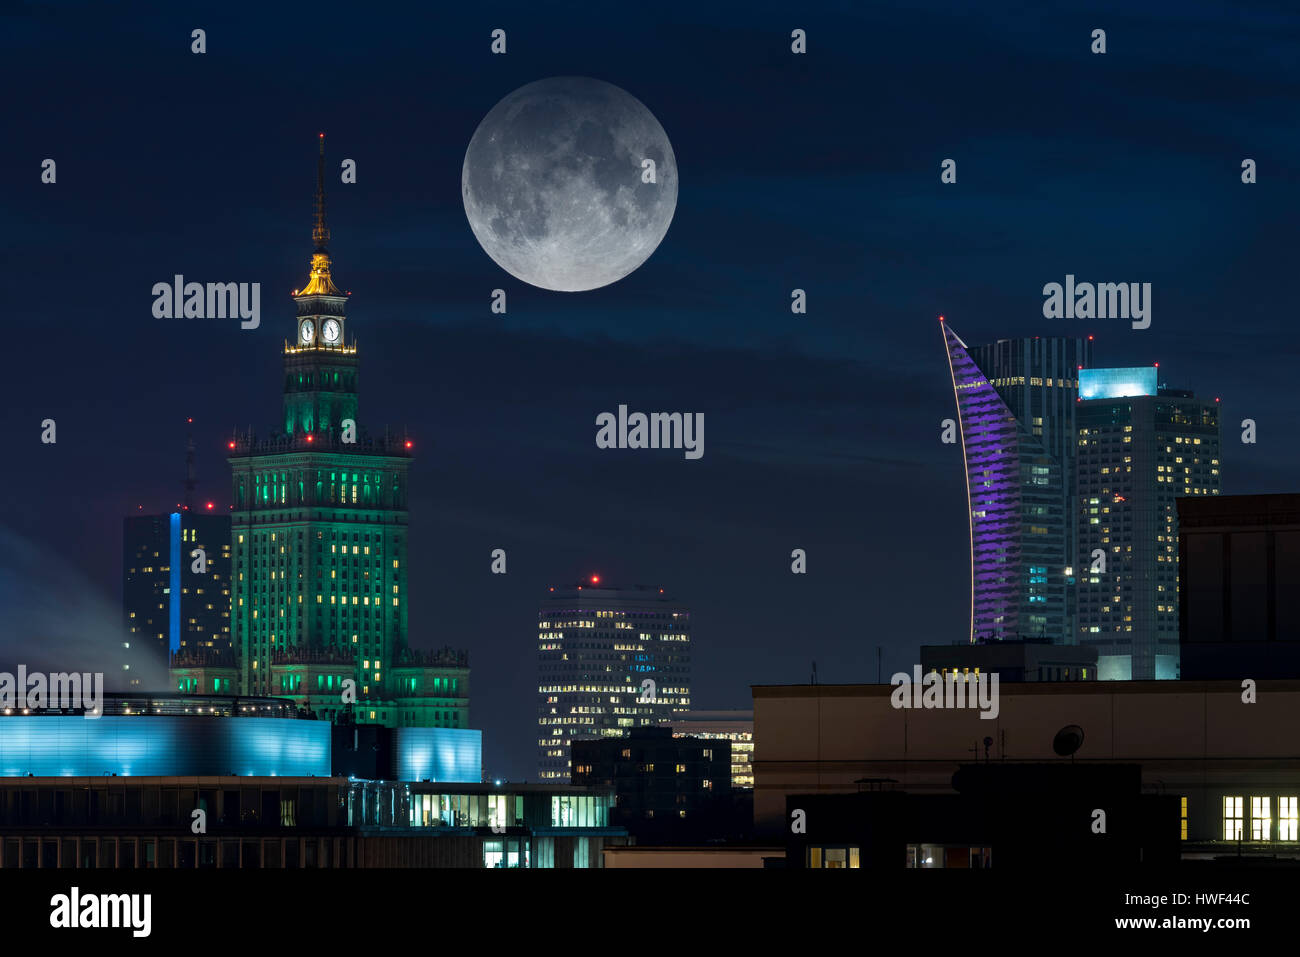 Full moon over Warsaw city a capital of Poland - Stock Image